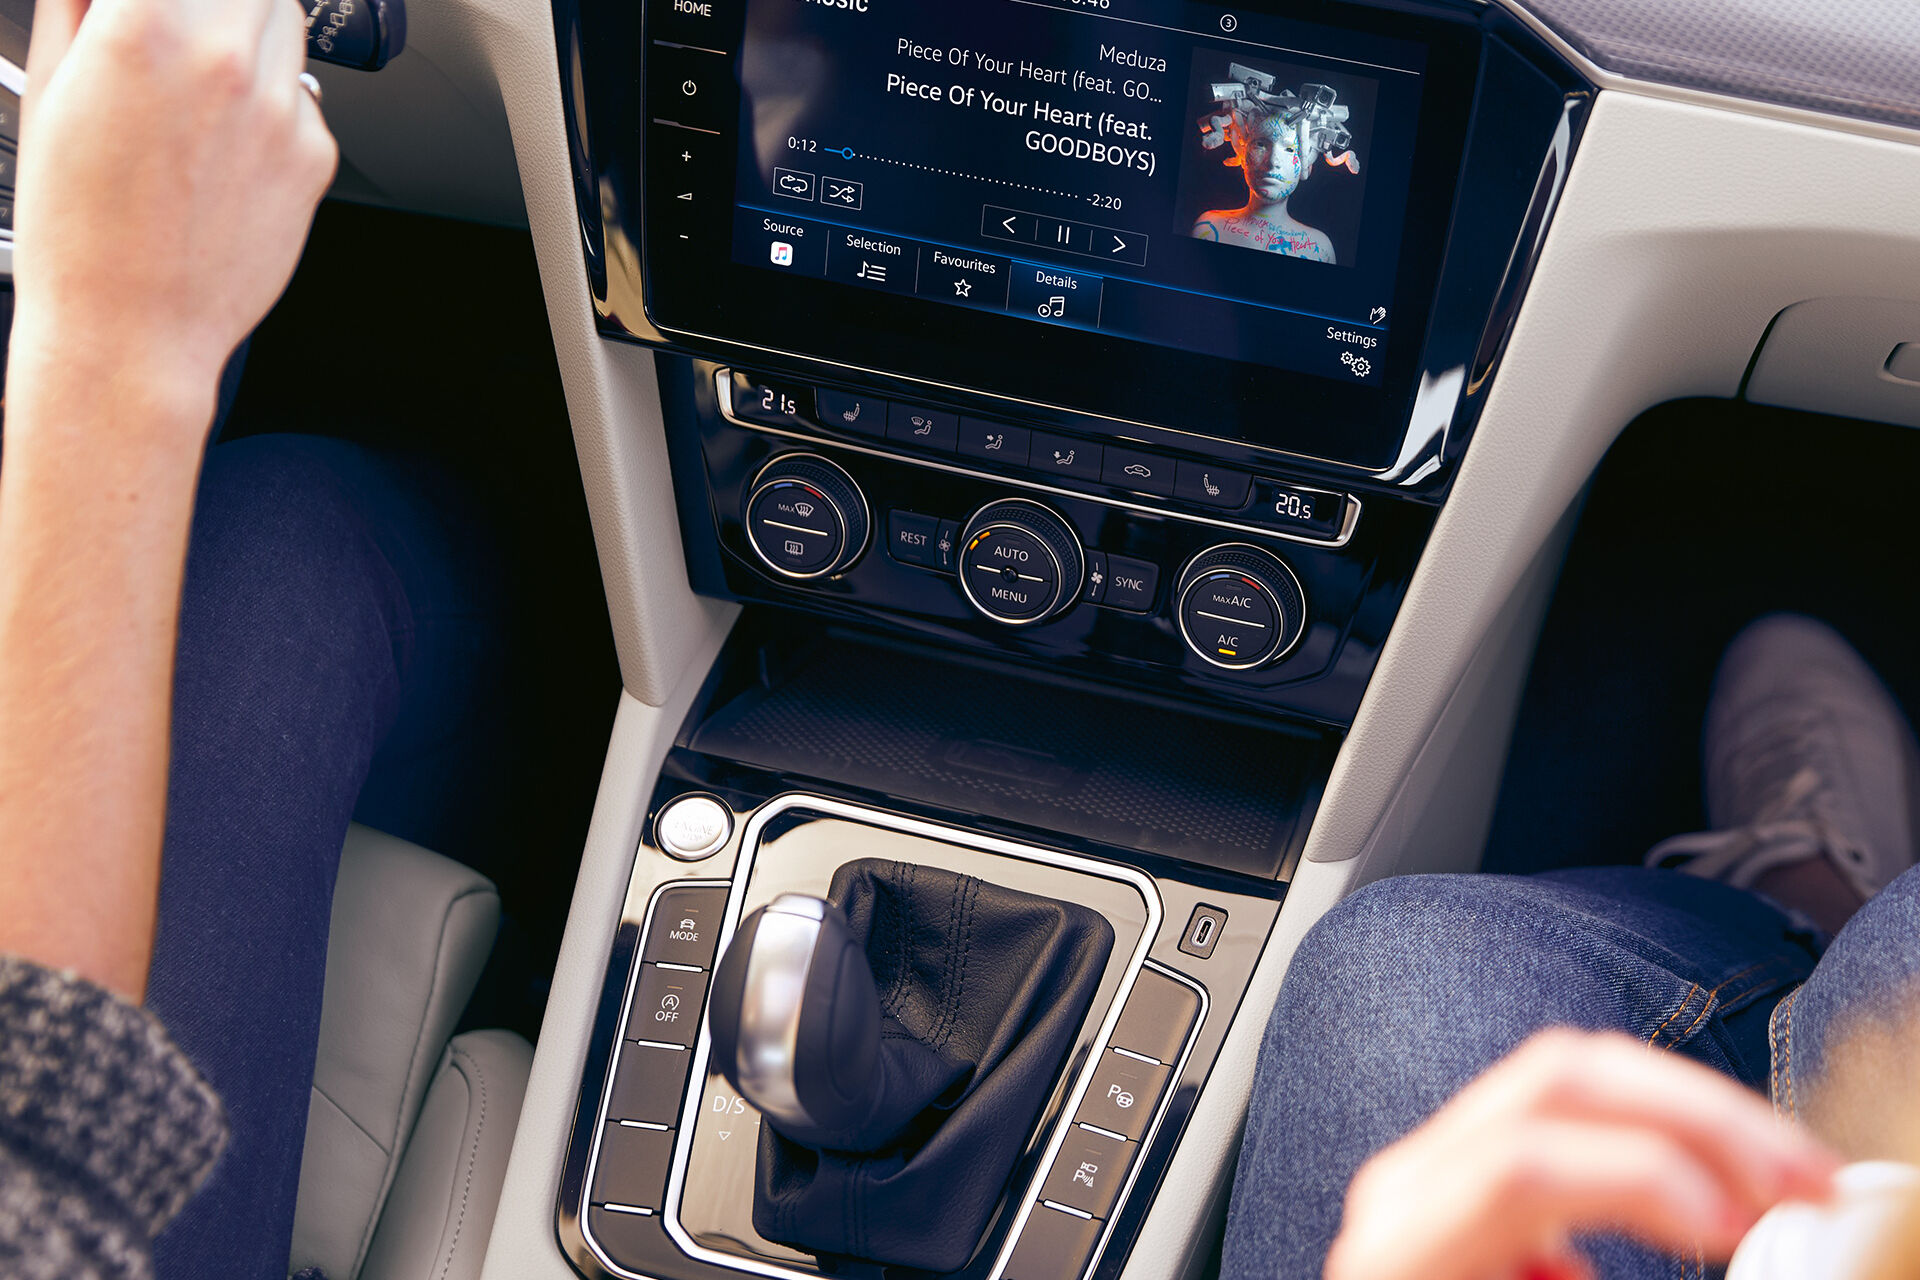 We Connect - Musikstreaming direkt im Infotainment-System